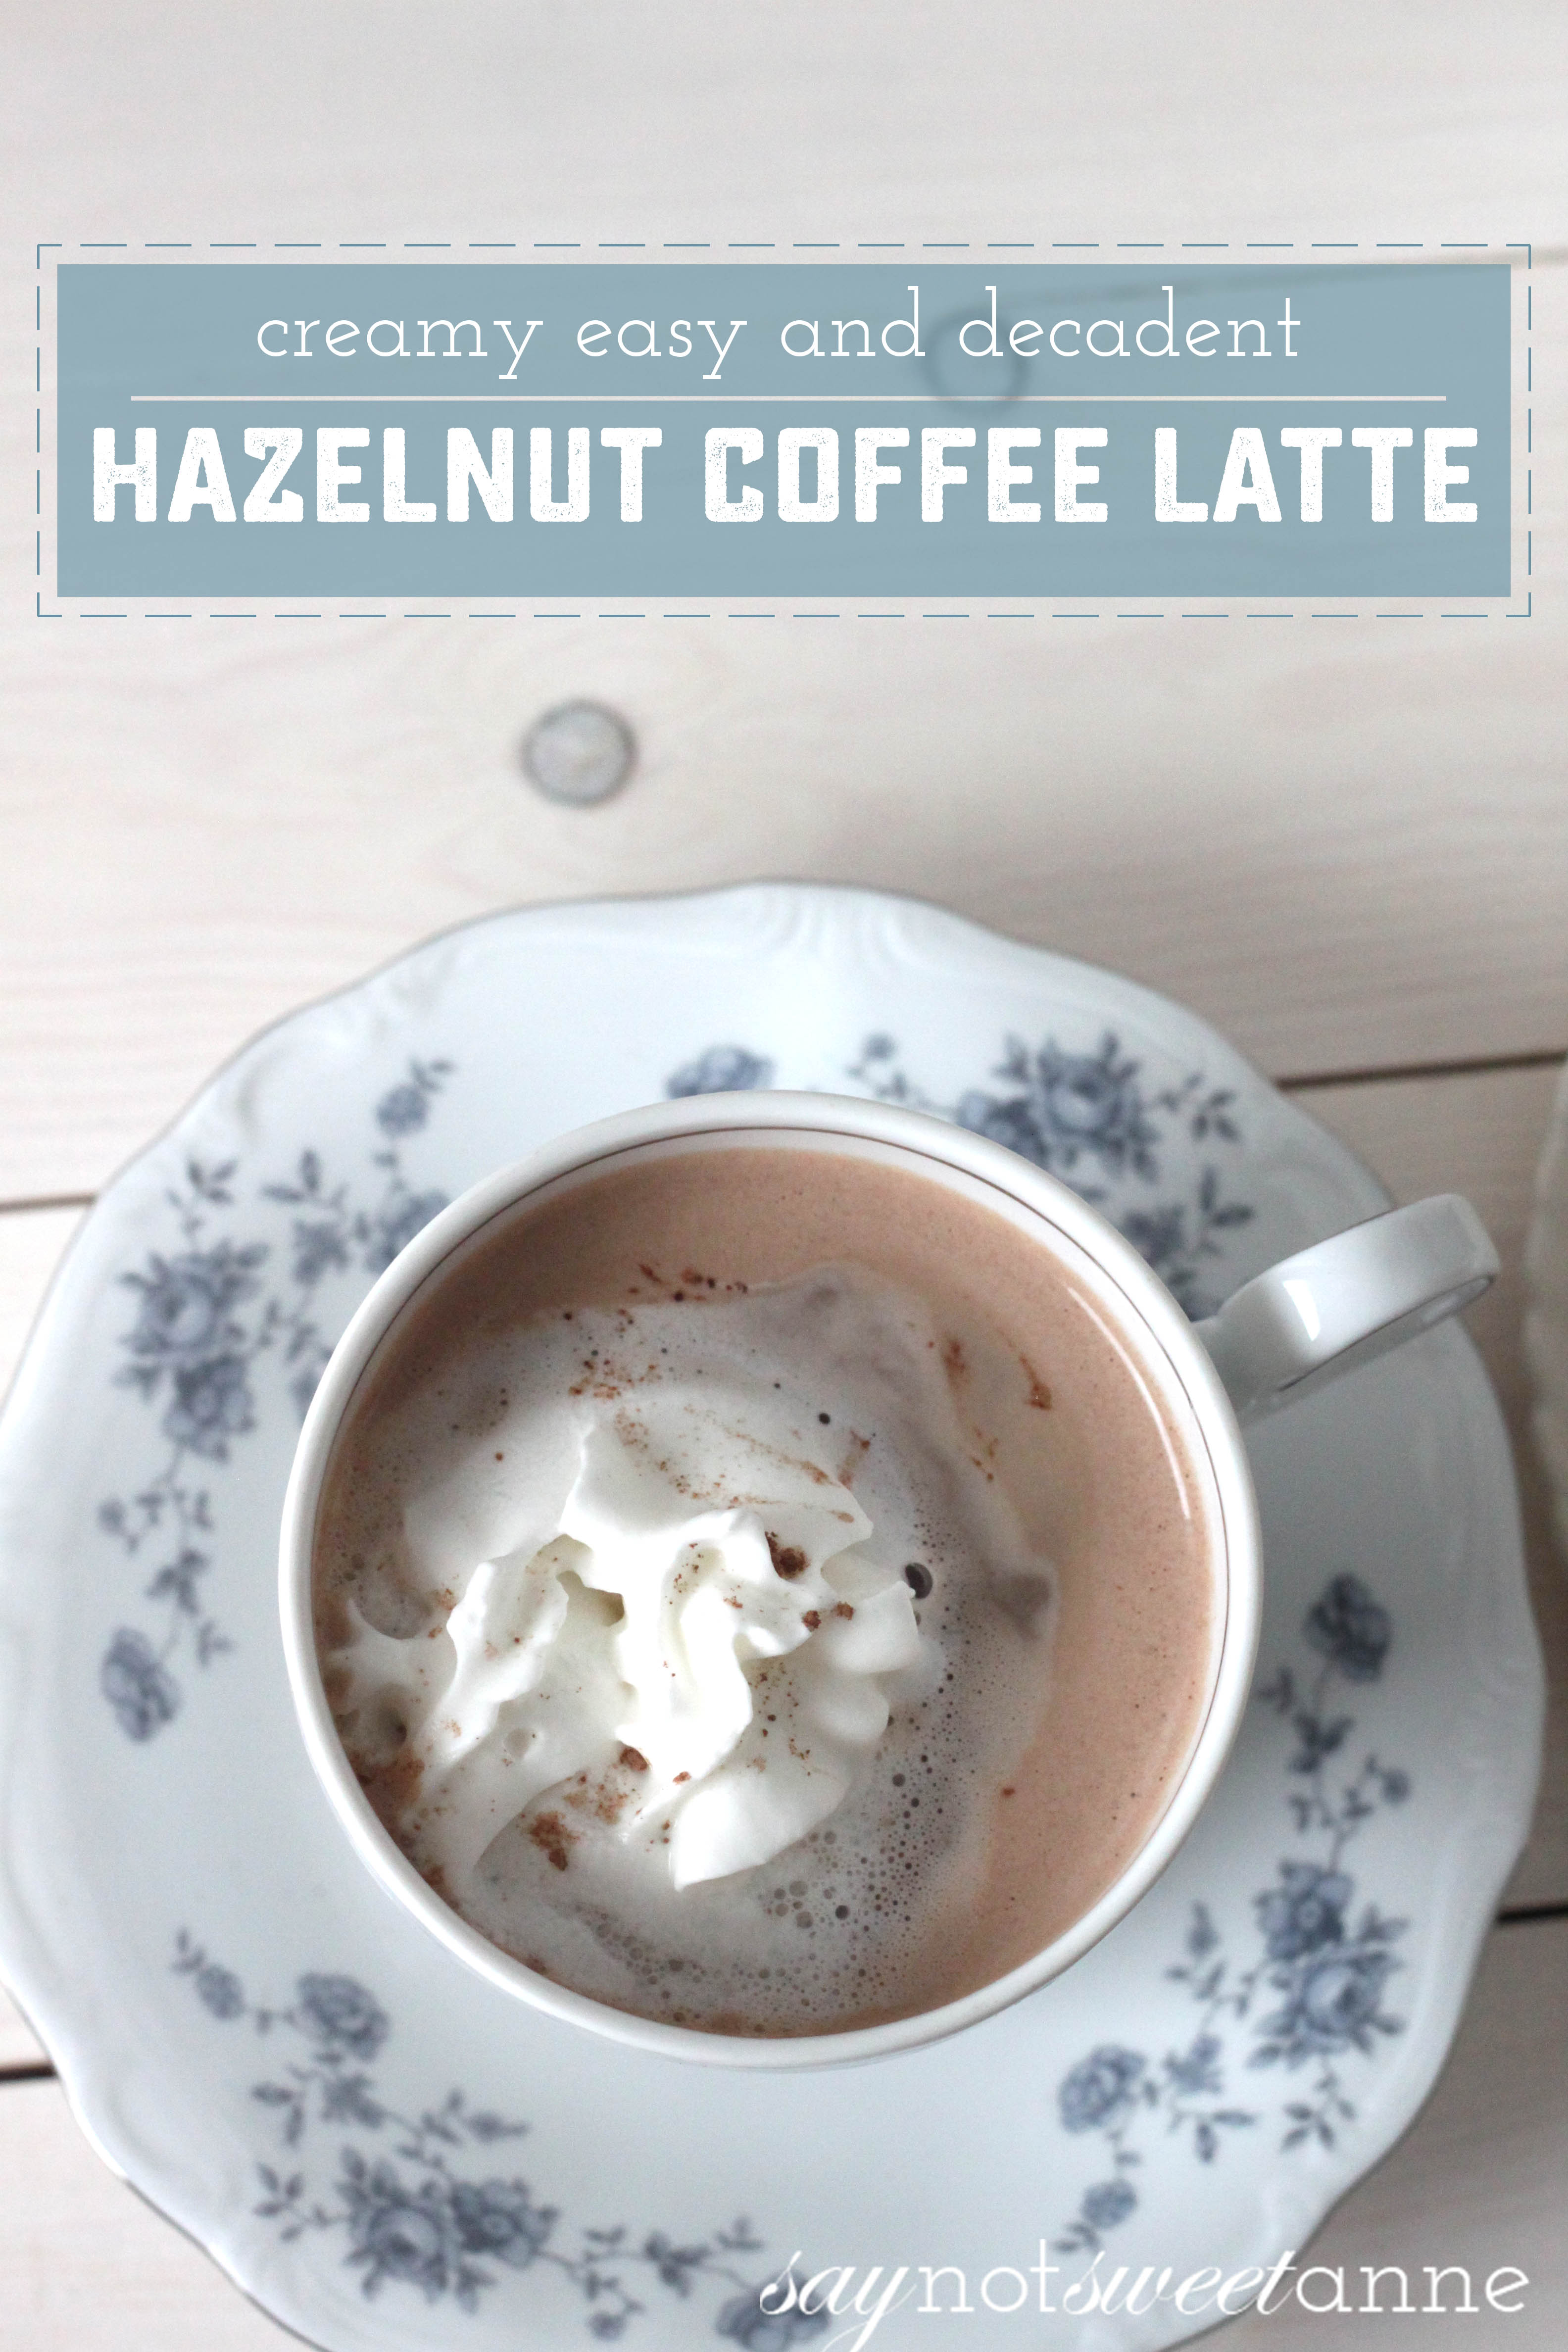 How To Make Hazelnut Mocha Latte For Two Sweet Anne Designs